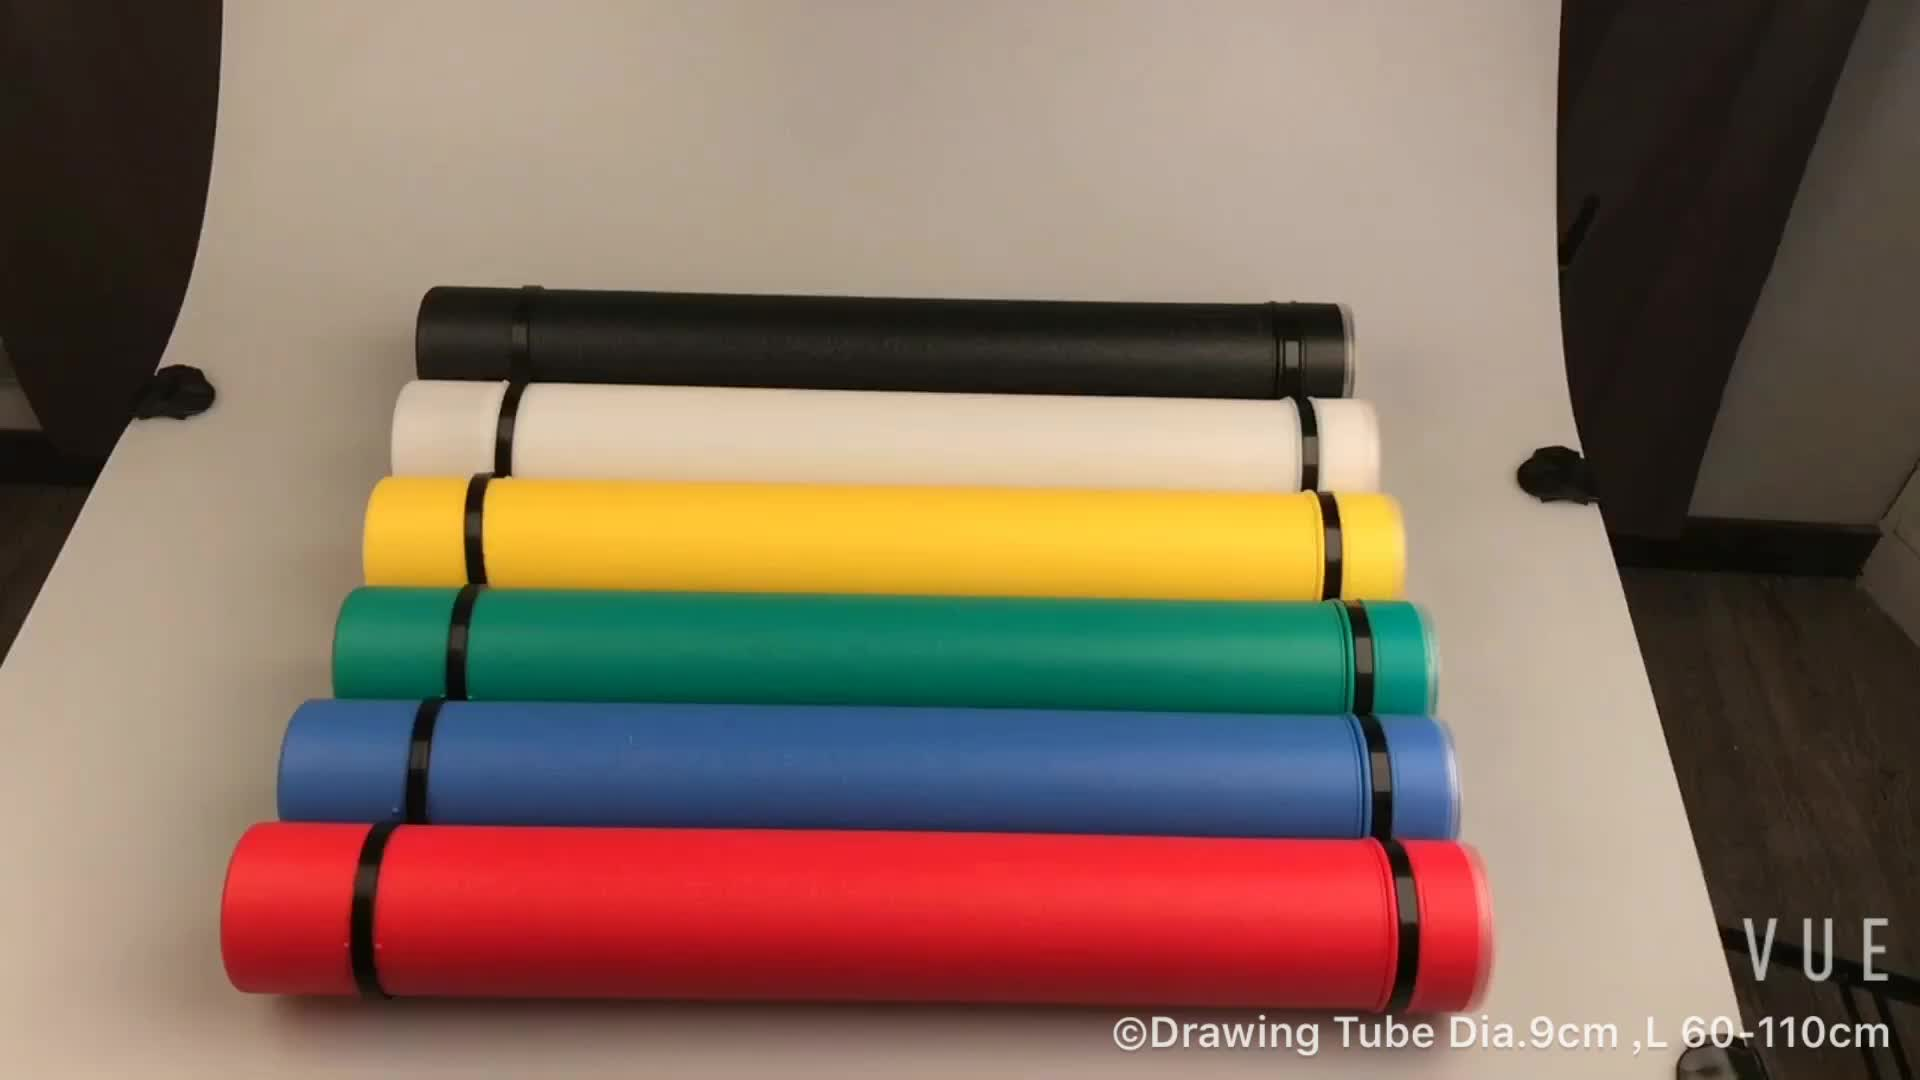 Storage Tubes & Poster Tubes for storing & carrying documents, drawings, blueprints, maps